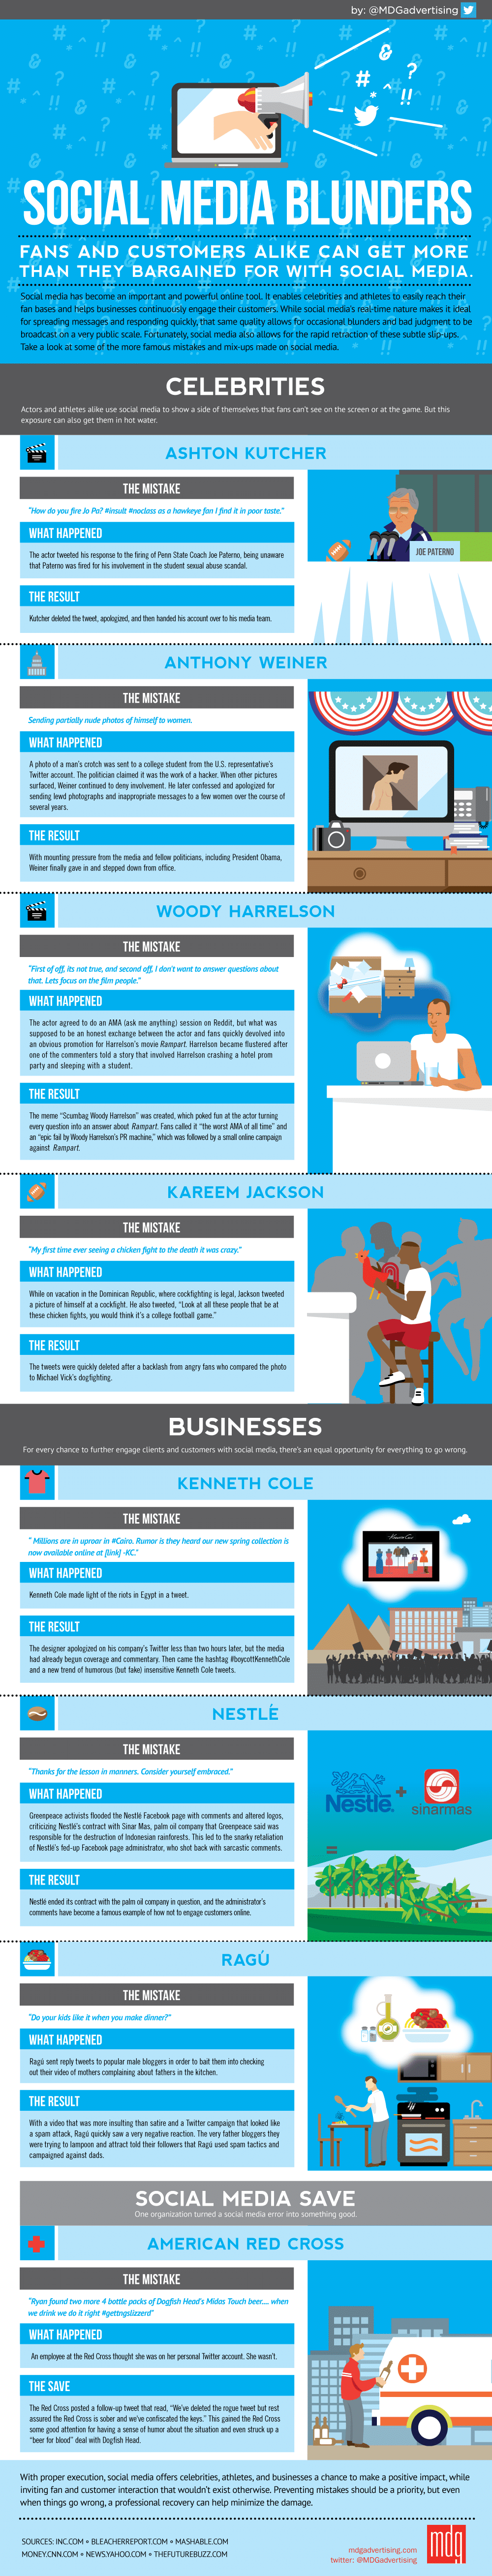 Blunders In Social Media History [Infographic]